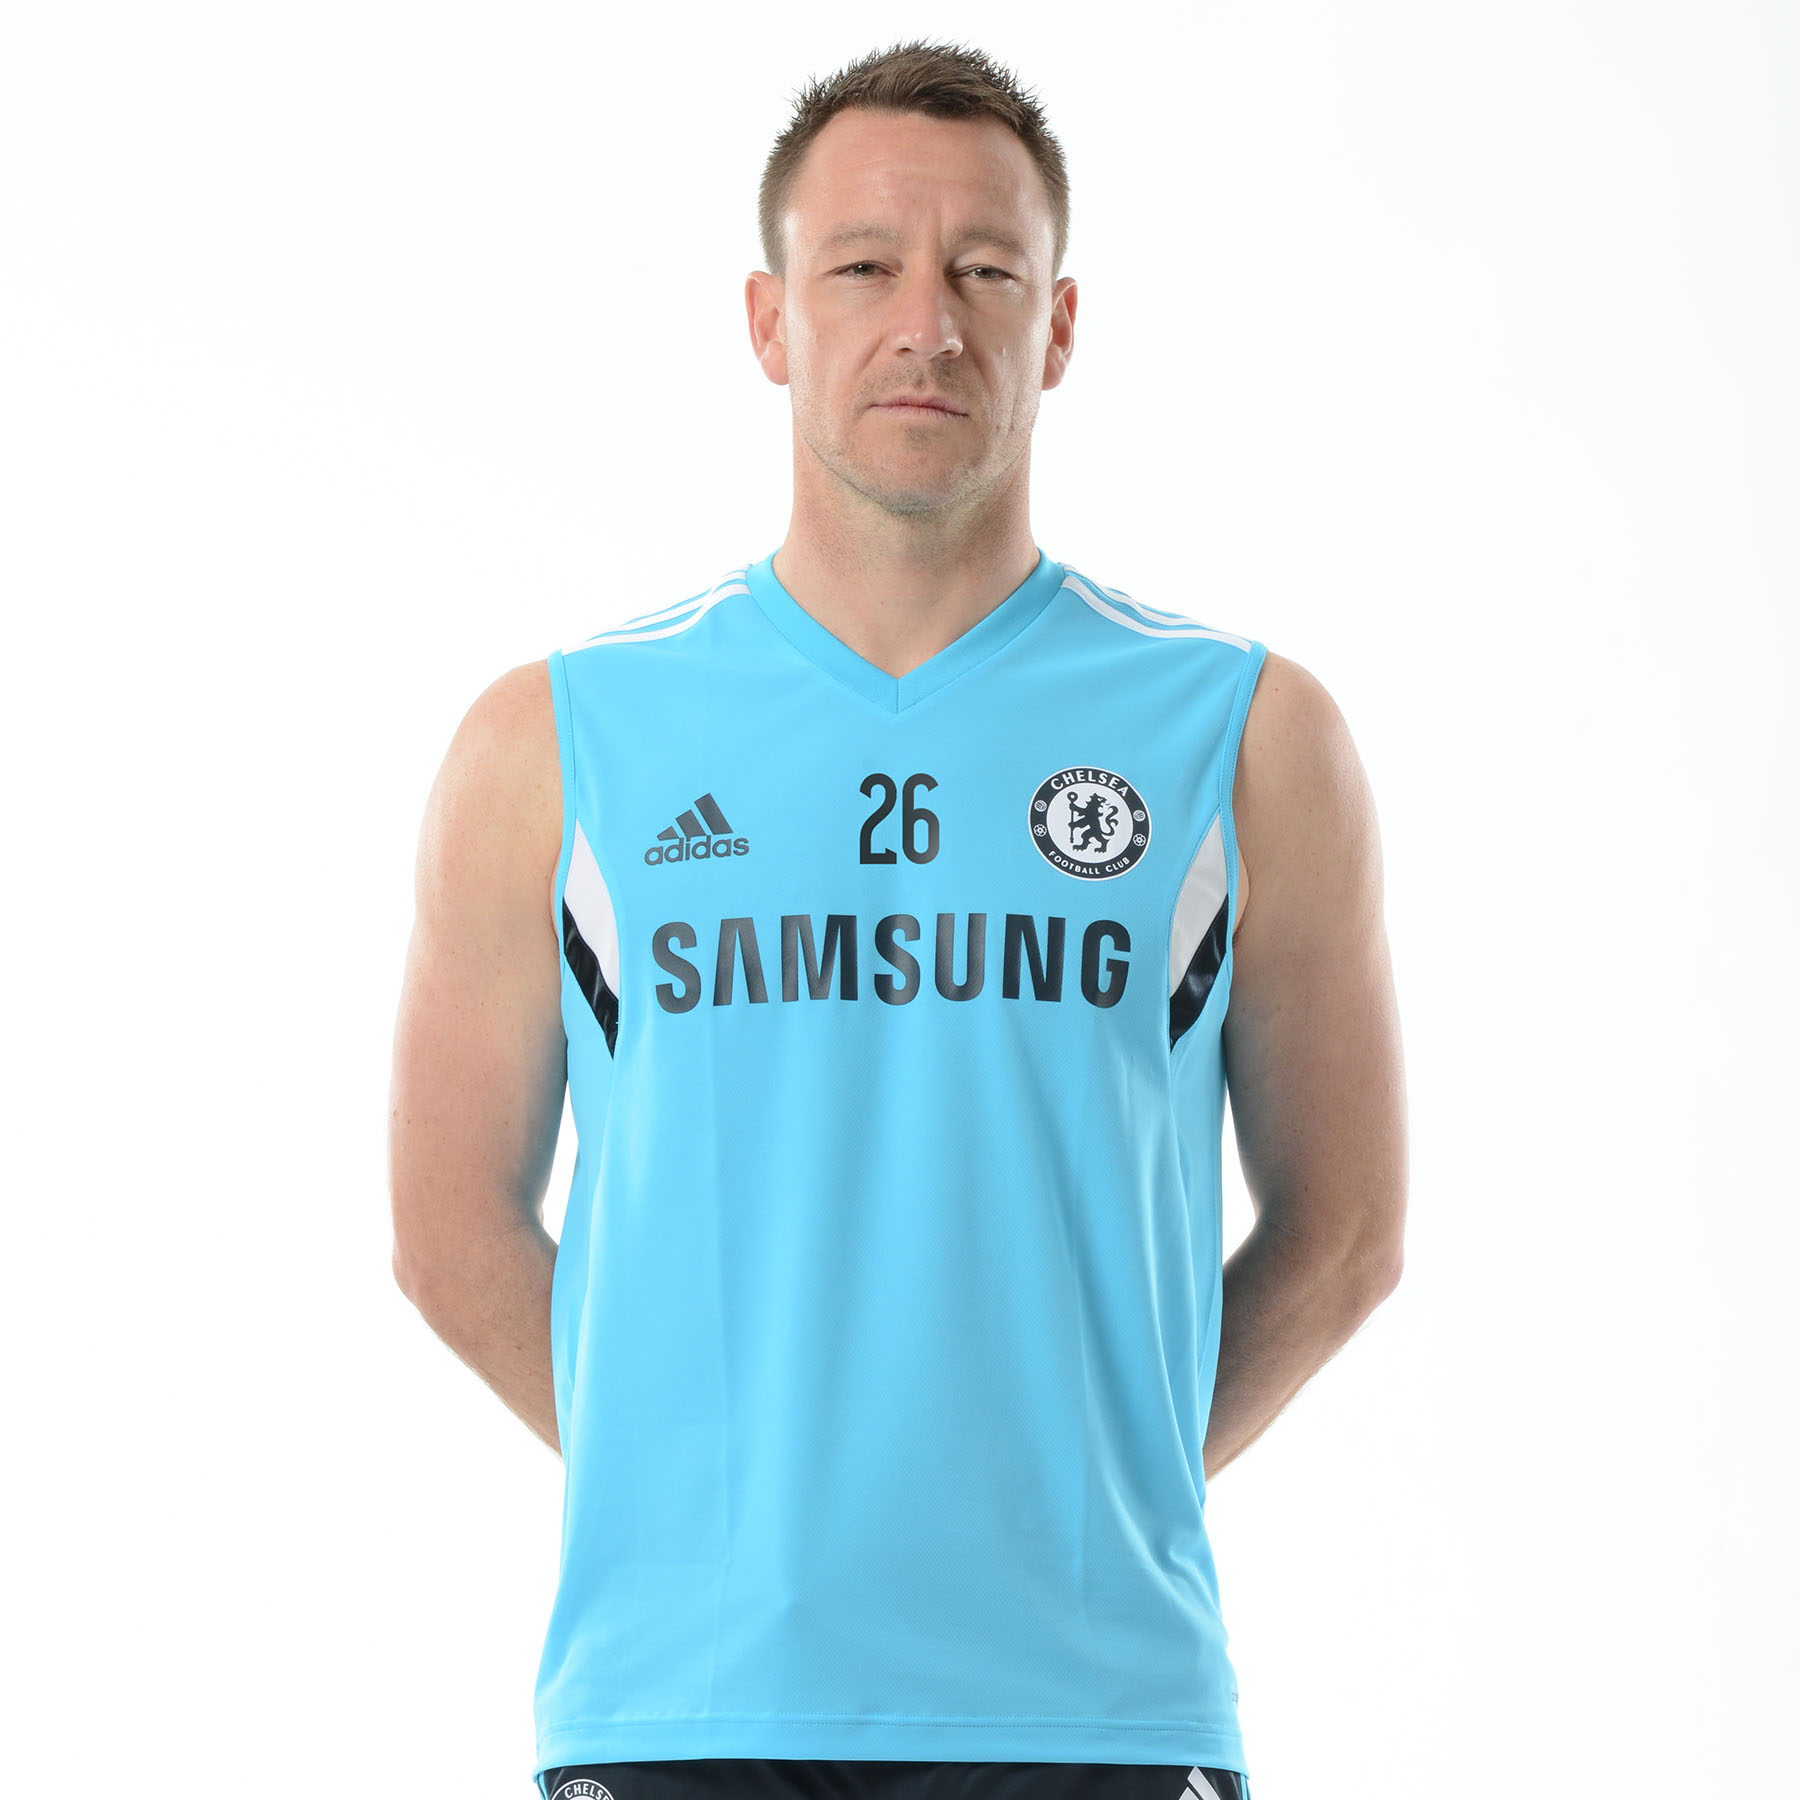 Chelsea Training Sleeveless Shirt Blue  Stay cool as the game heats up with this intense blueChelsea sleeveless jersey.  Featuring Formotion™ fabric technology, the Chelsea club crest lion badge and adidas performance logo and stripes, this slim fit Chelsea leisure top offers pro-level comfort.  Benefits of this Chelsea Training Jersey •Formotion™ fabric technology •Sleeveless design •Chelsea club crest lion badge •adidas performance logo and stripes